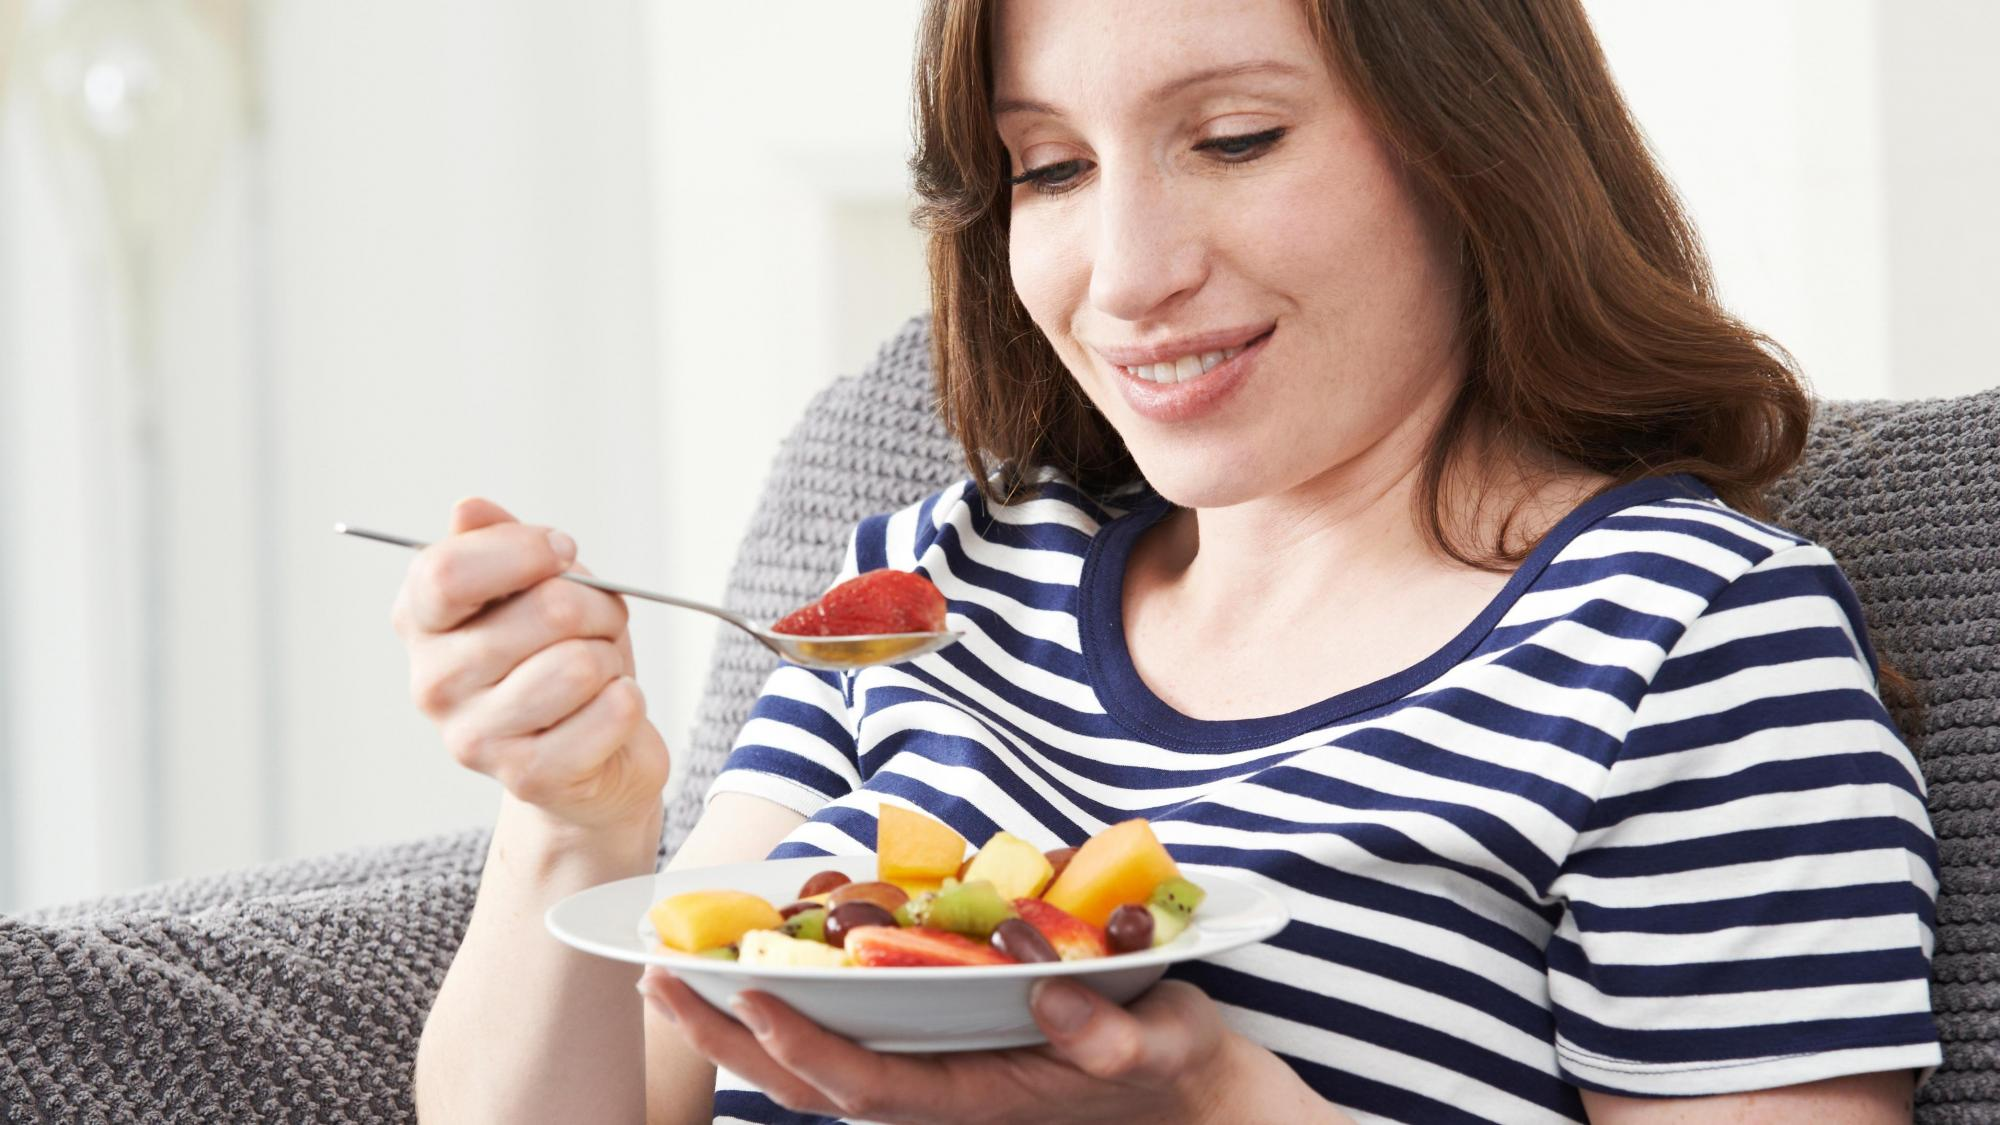 6 Foods You Should Never Eat While Pregnant And 6 You